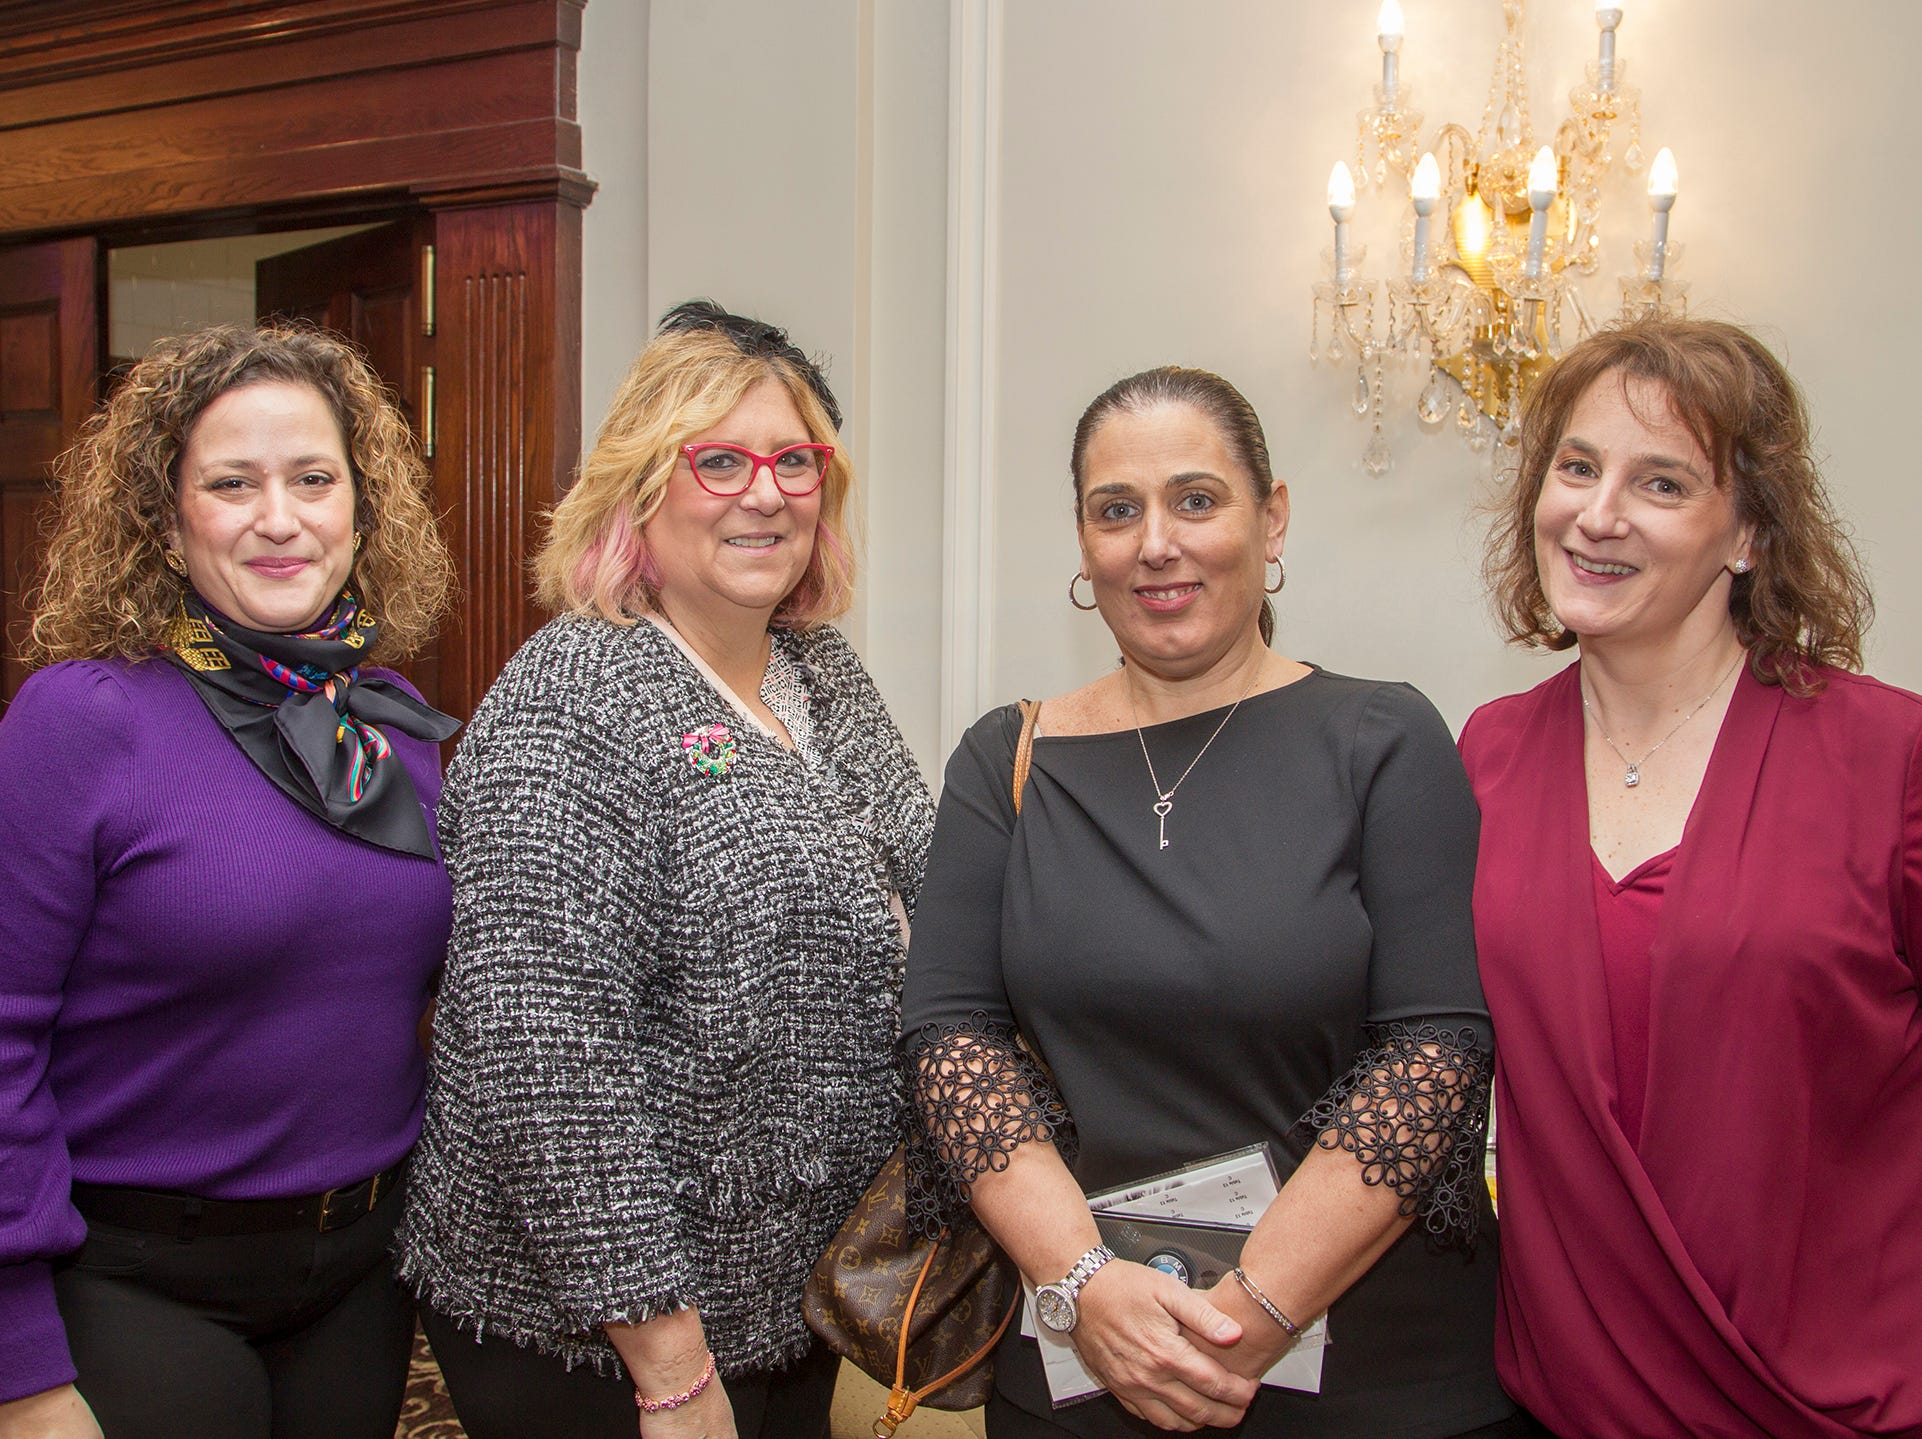 Erica Liwares, Terry Perria, Diane Carbone, Wendy DeGennaro. Immaculate Heart Academy held its annual Fashion Show fundraiser at Florentine Gardens in River Vale. 12/02/2018